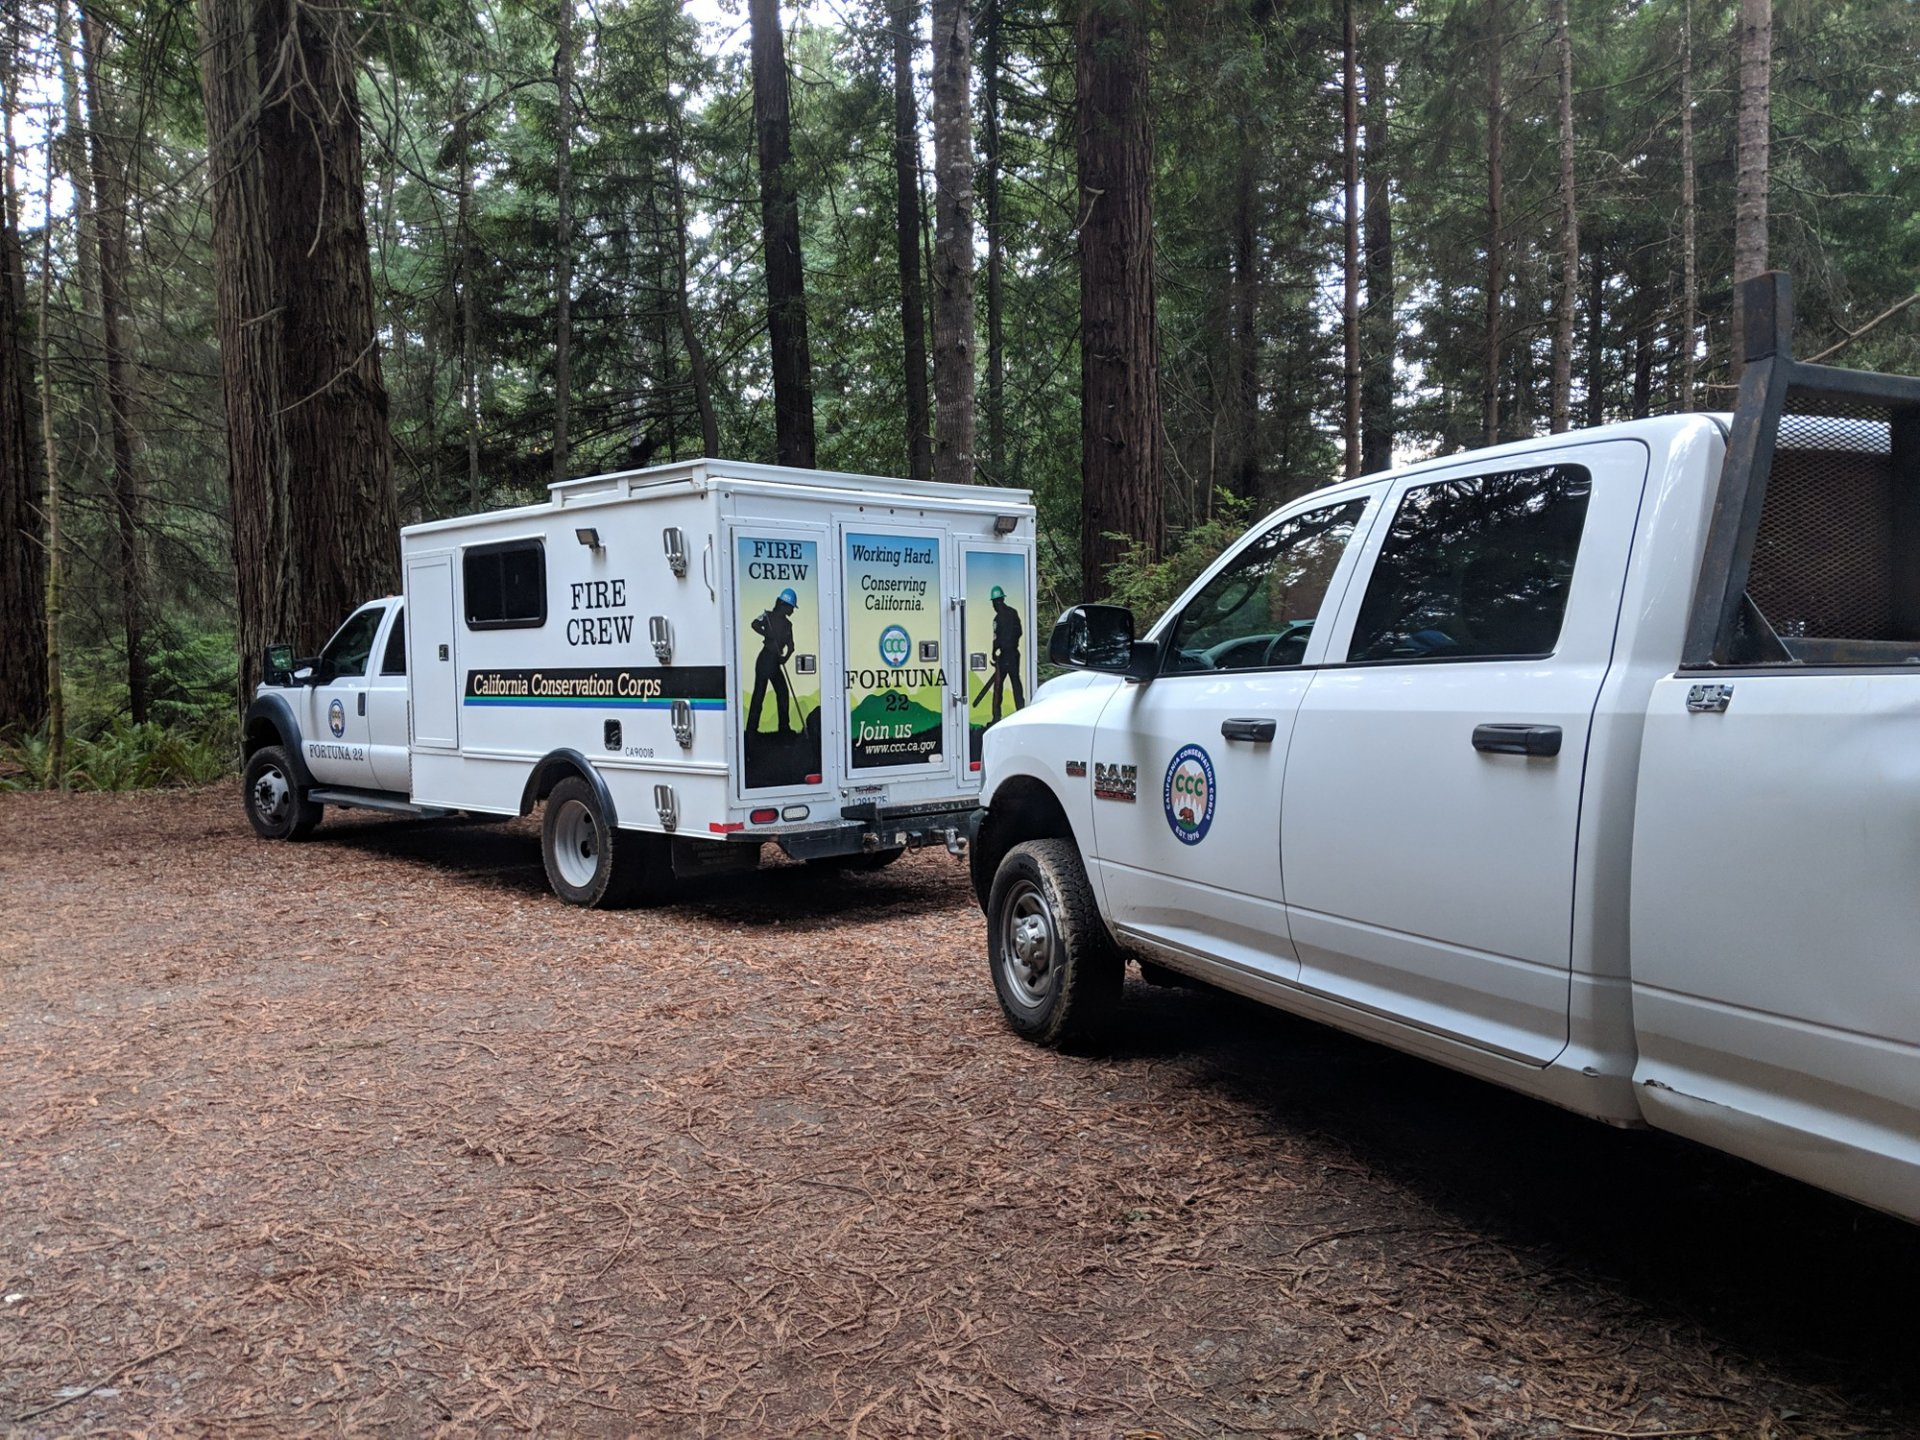 The California Conservation Corps trucks parked at the bottom of 'Loam's Palace' on Jan. 2. | Photo by Jett Williams